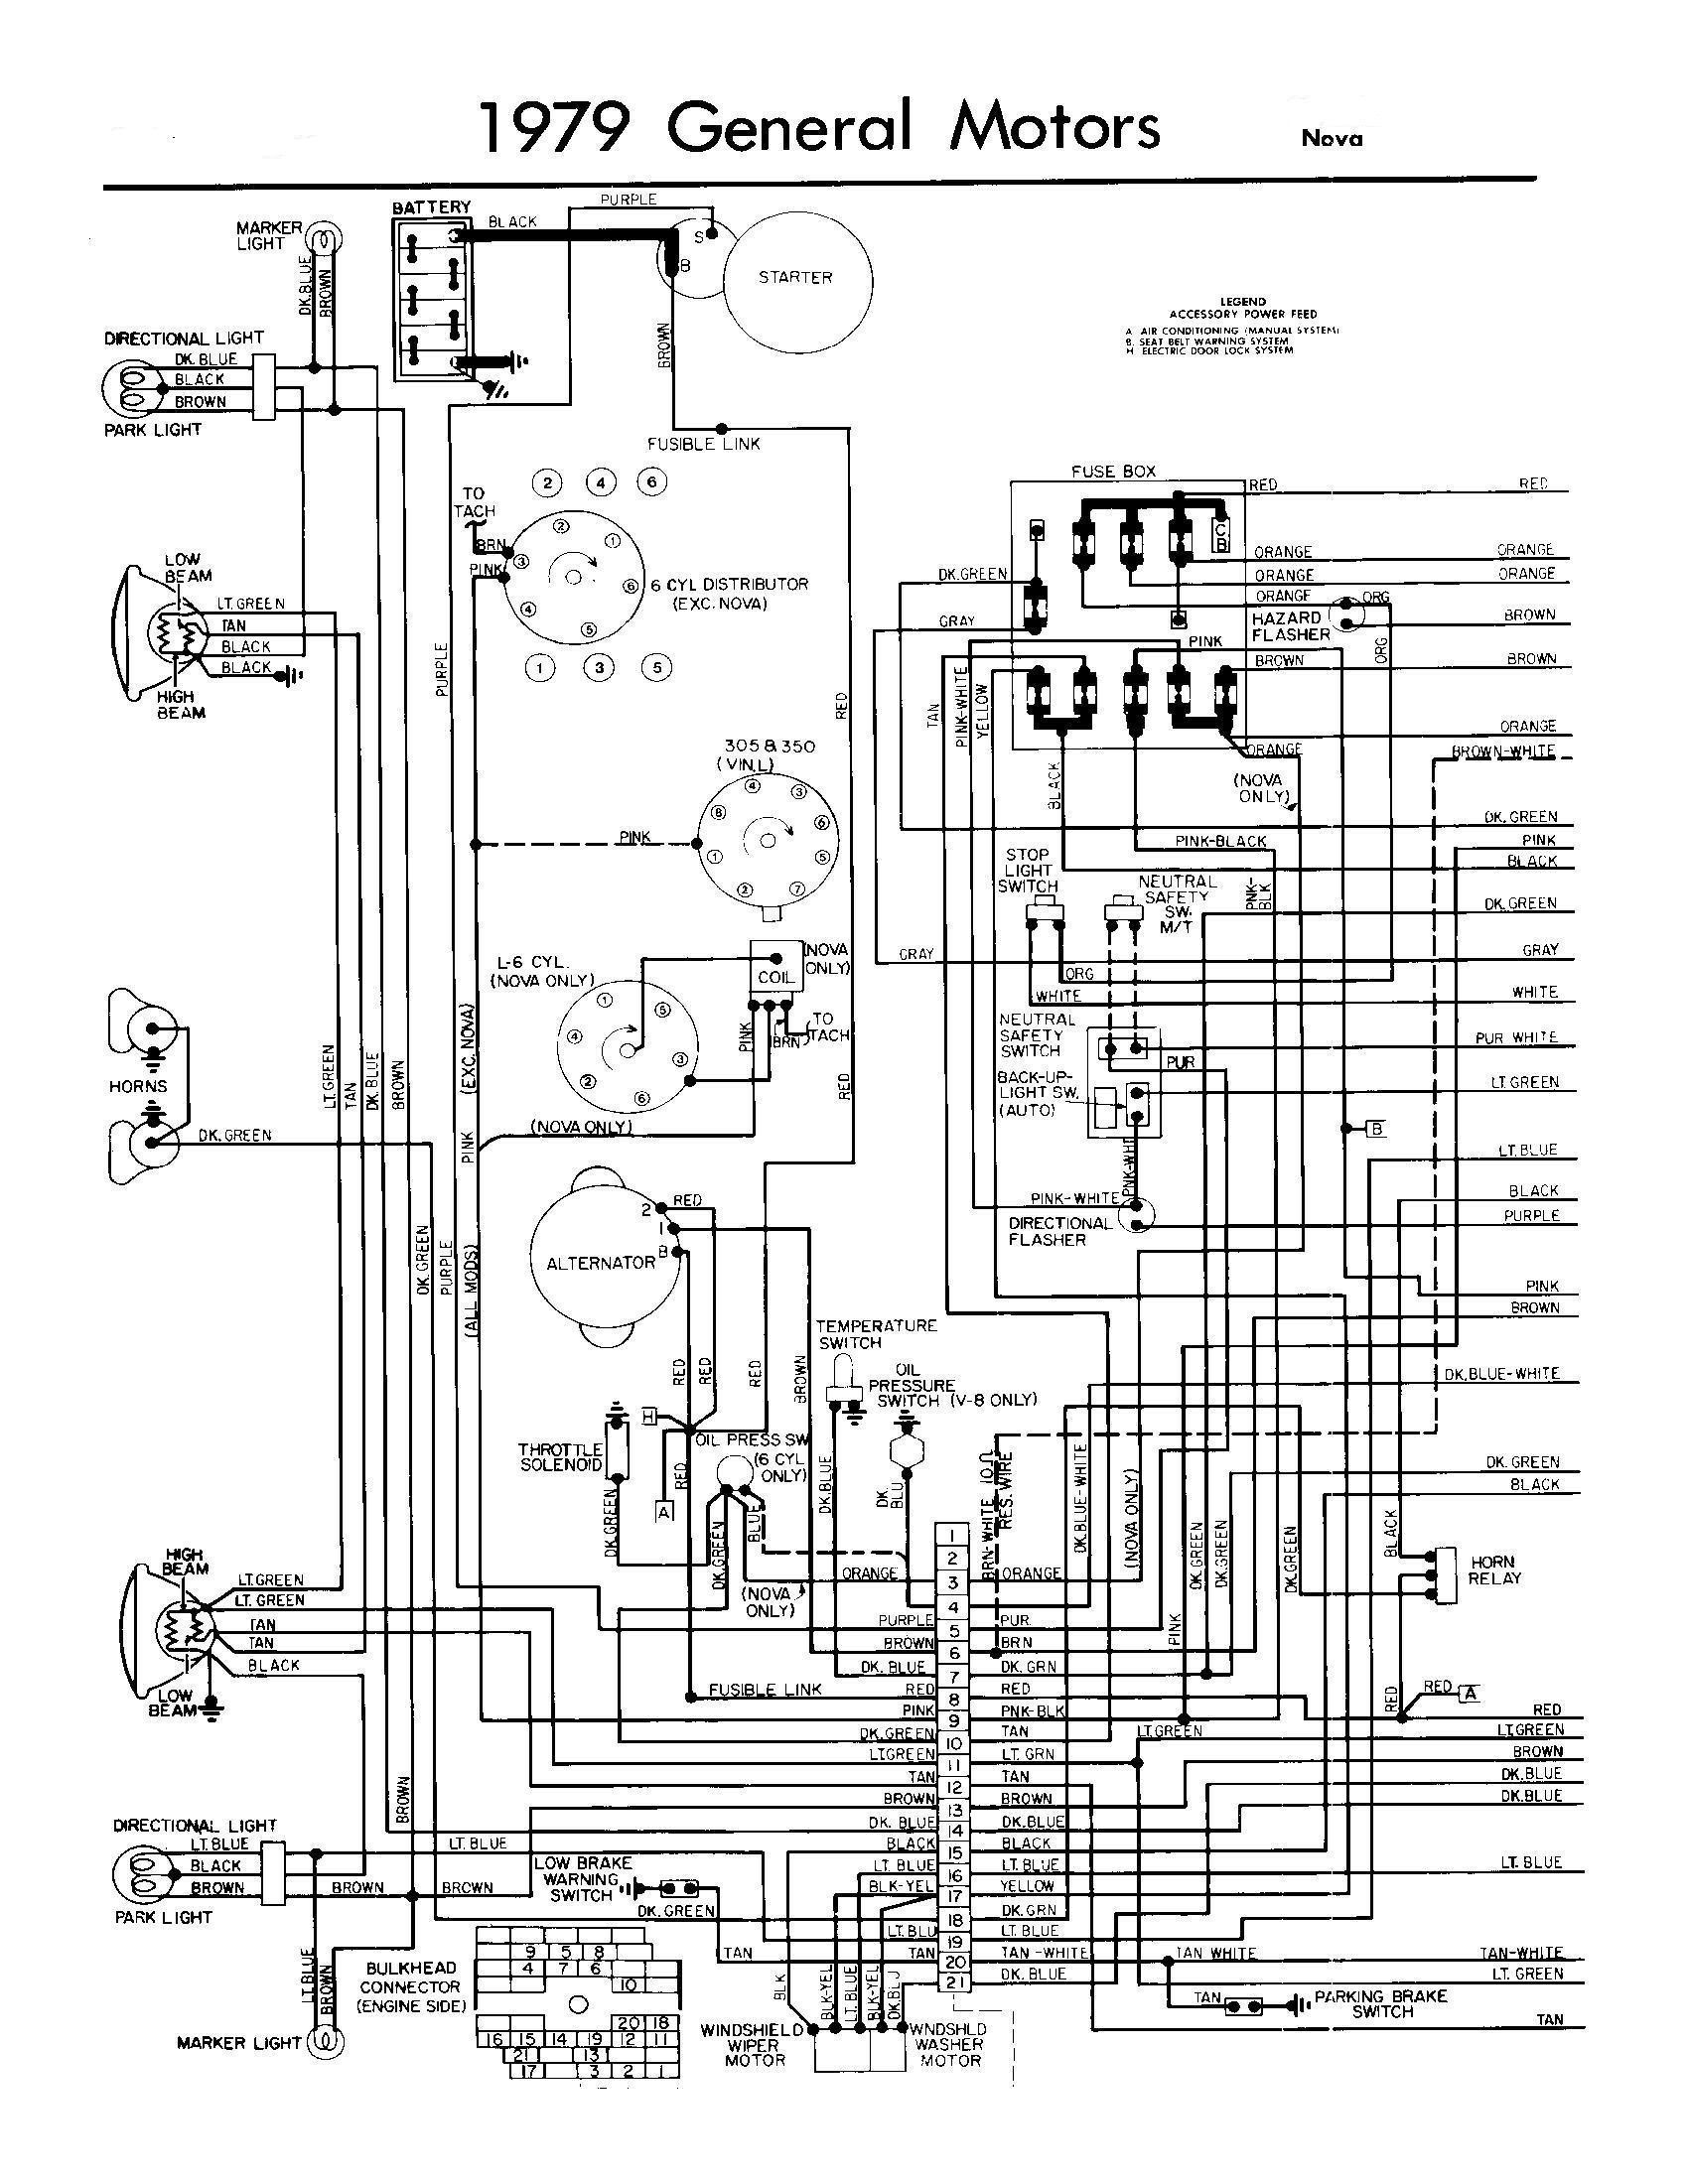 wiring harness guide hobbiesxstyle rh hobbiesxstyle com 1957 Chevy 3200 Wiring-Diagram 1955 Chevy Wiring Diagram